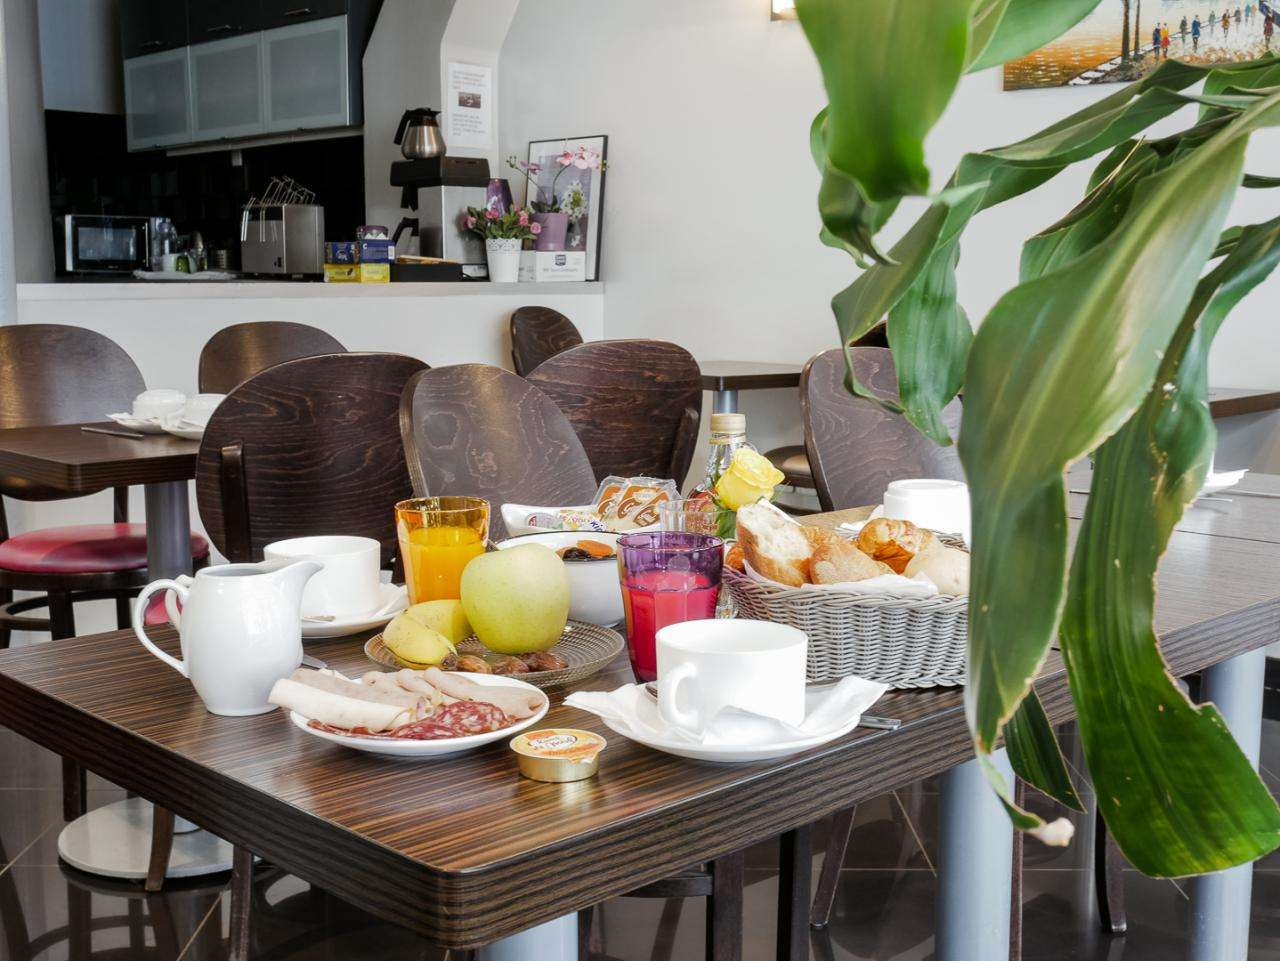 Hotel Bonsejour - Breakfast room